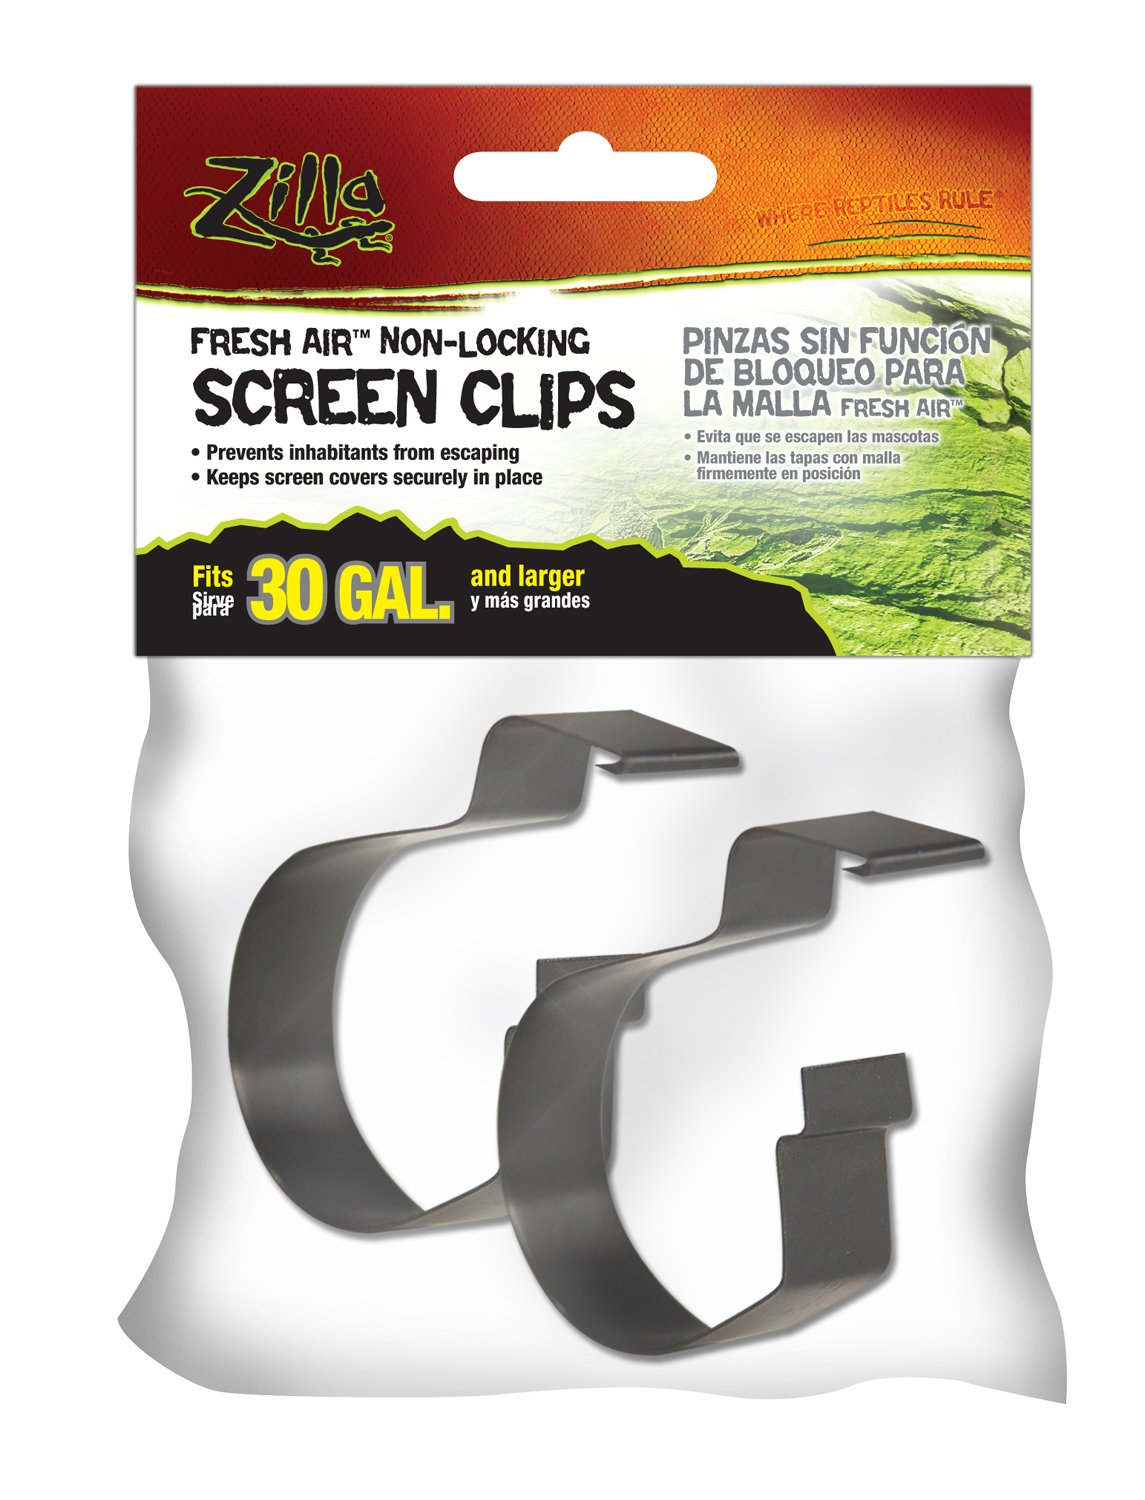 Zilla Reptile Terrarium Covers Non-Locking Screen Clips, 30G+, 2-Pack